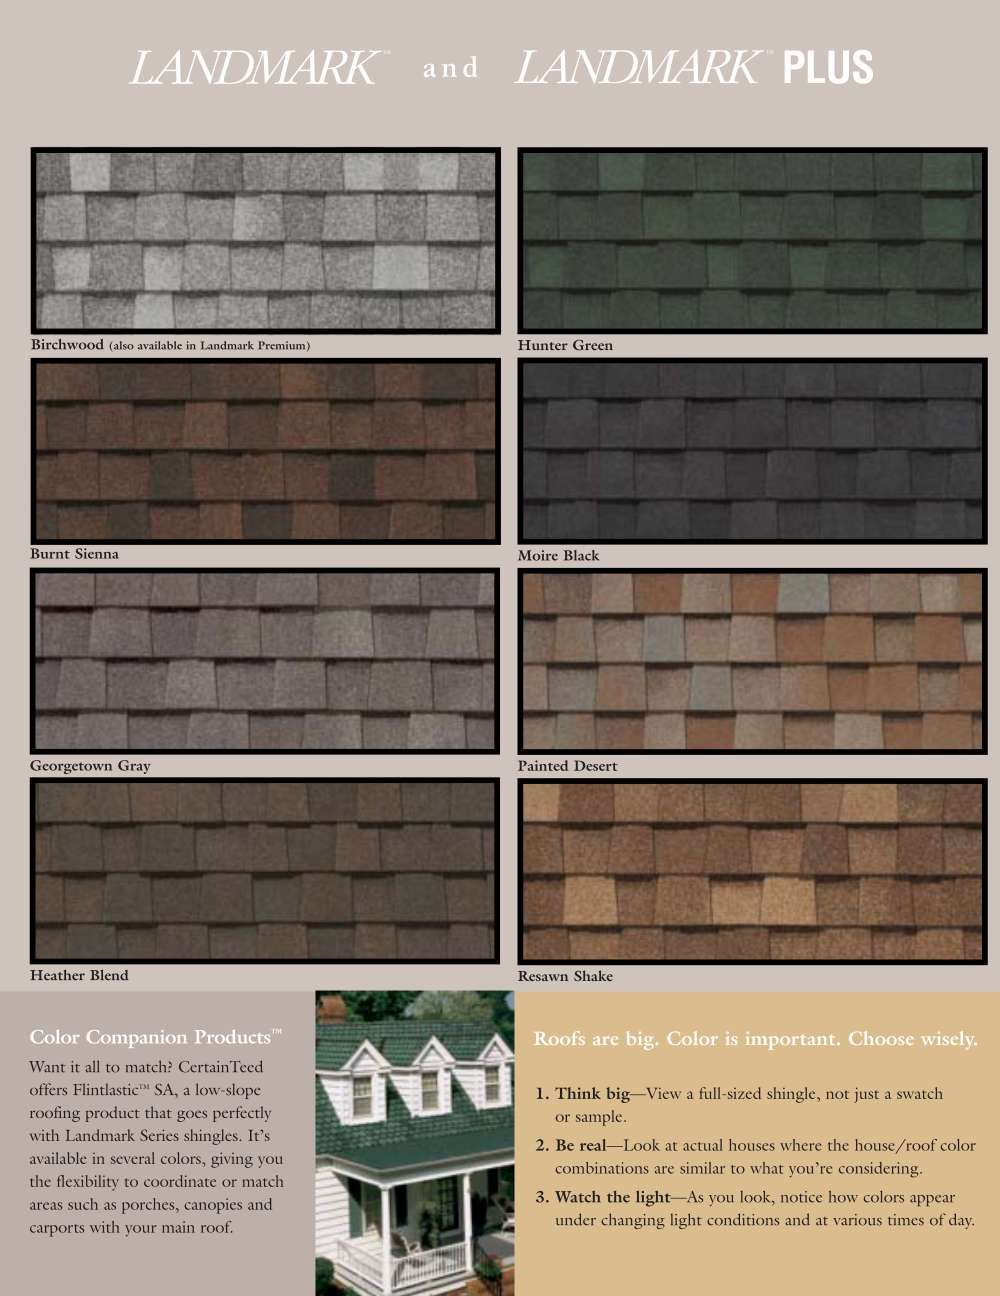 Certainteed Roofing Certainteed Landmark Series Premium Shingles